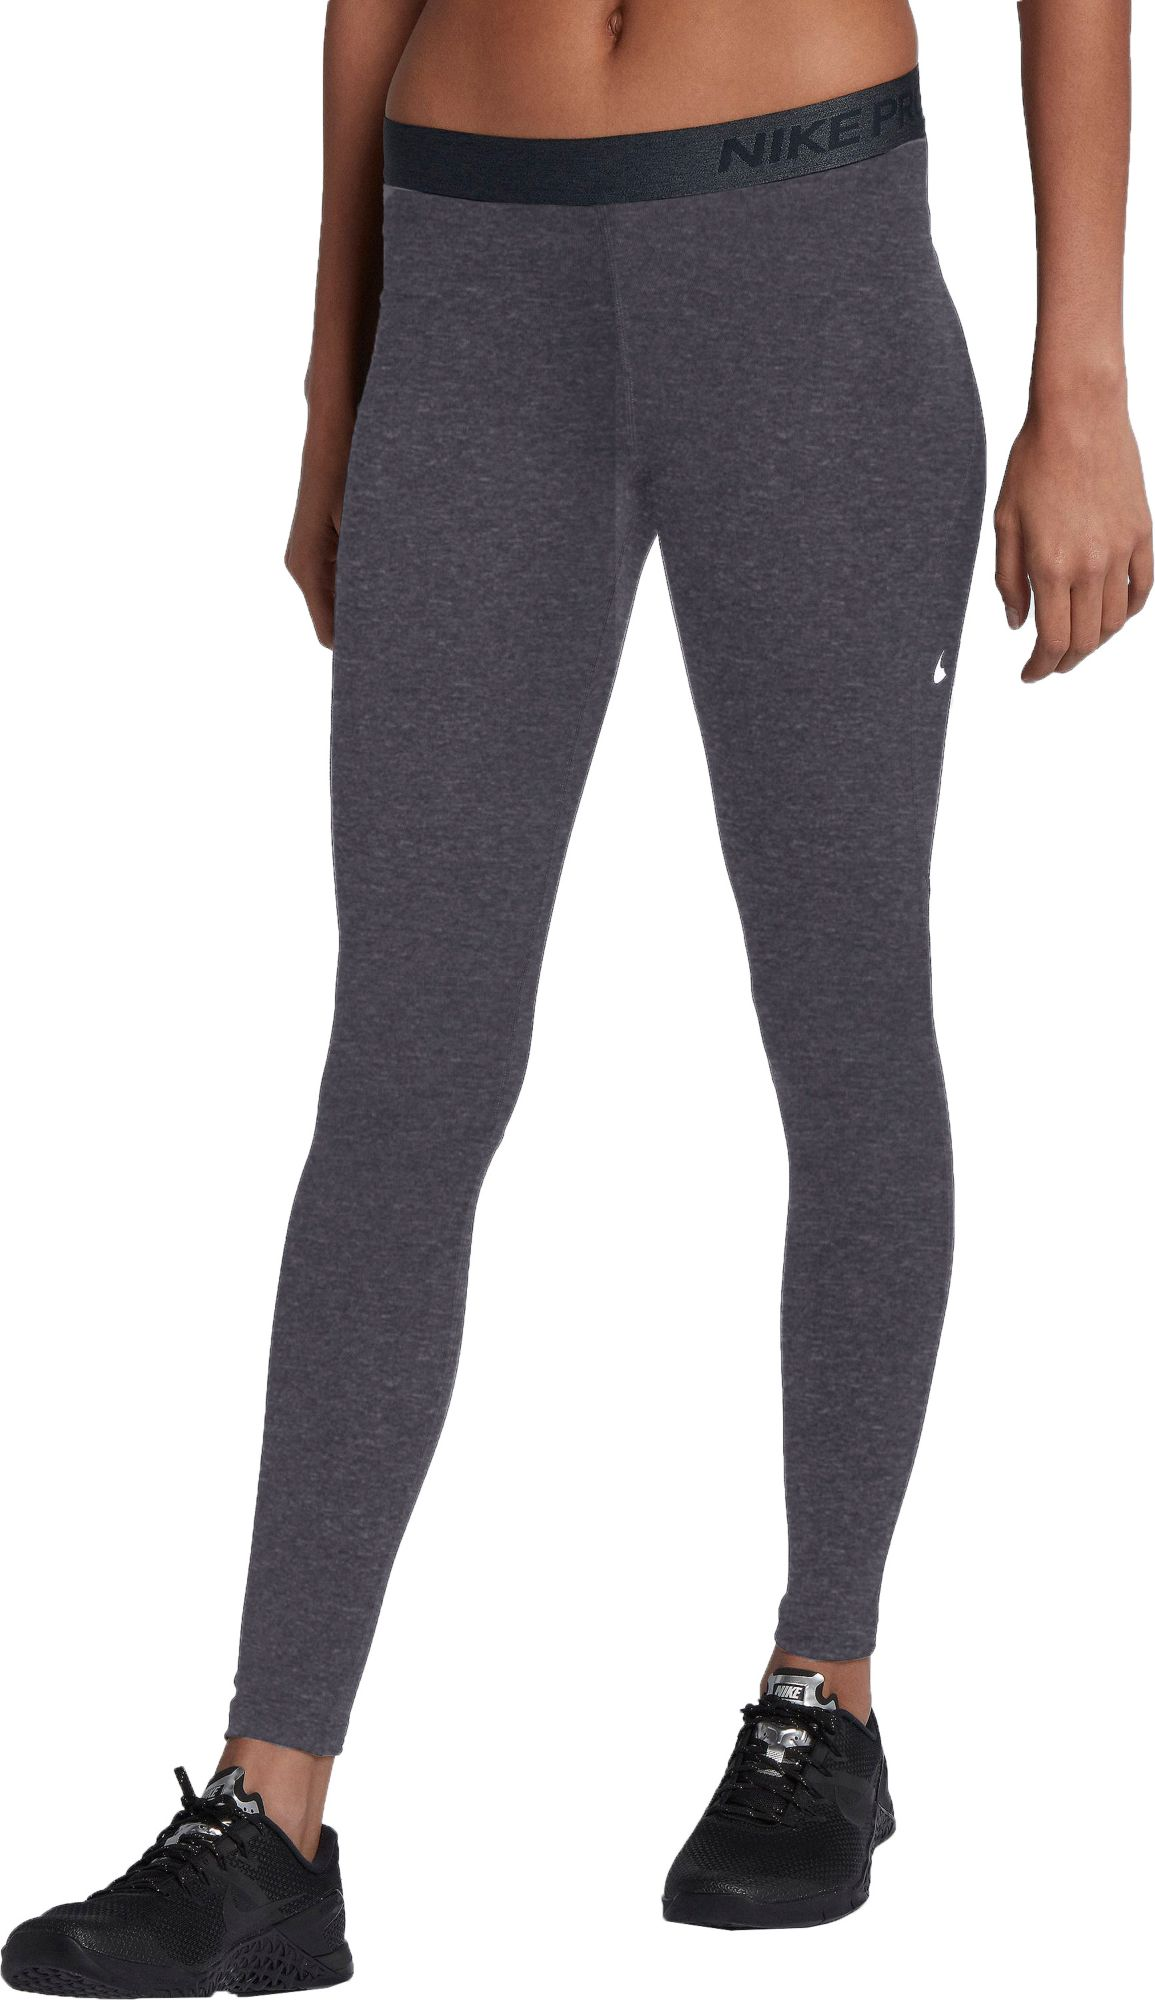 d6e30f46936a81 Nike Women's Pro Warm Training Tights | DICK'S Sporting ...